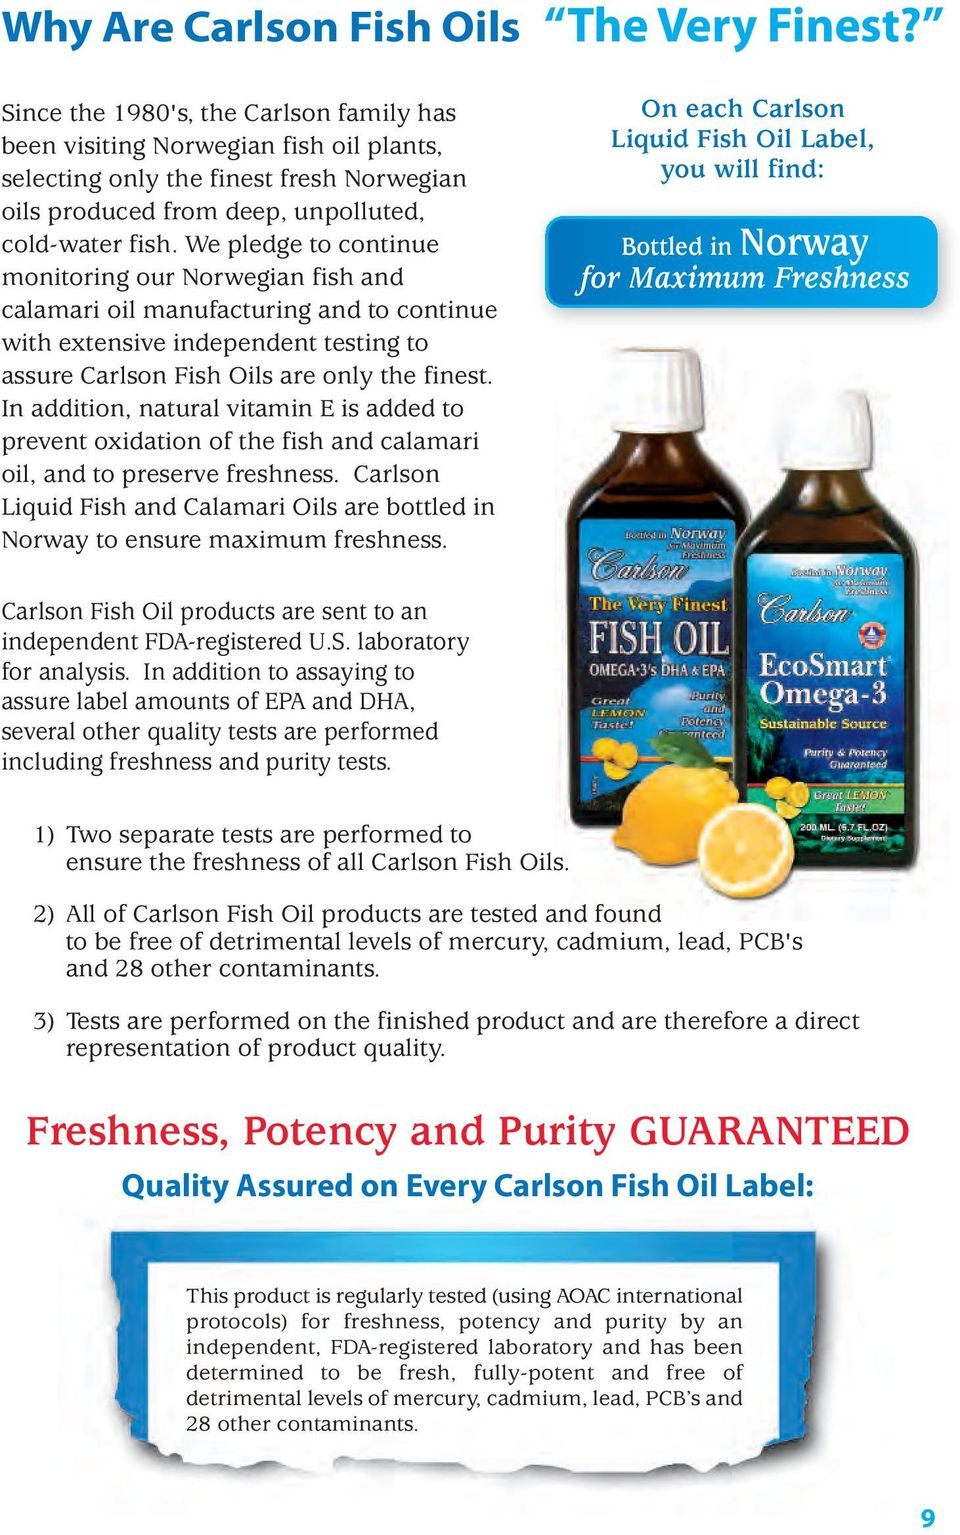 We pledge to continue monitoring our Norwegian fish and calamari oil manufacturing and to continue with extensive independent testing to assure Carlson Fish Oils are only the finest.